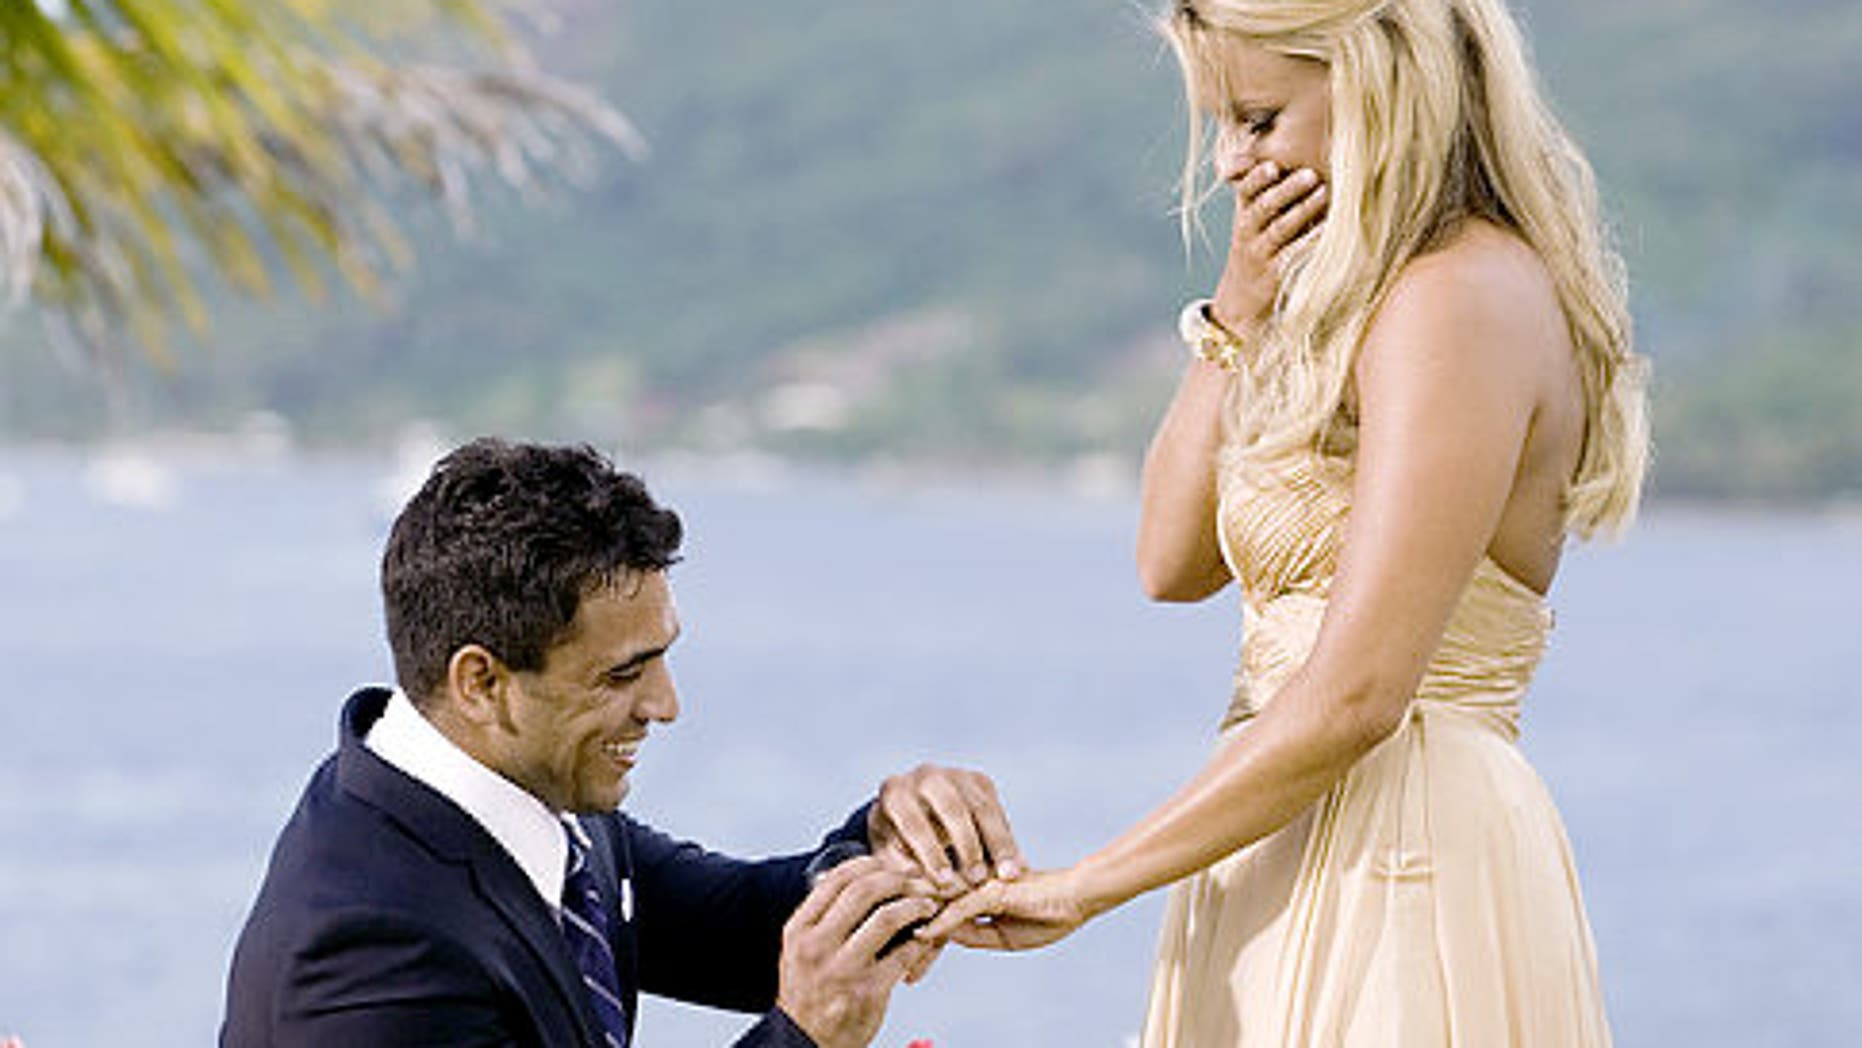 Aug. 2: Ali Fedotowsky, who risked everything for a second chance at love and began the search for her soul mate with 25 bachelors, has survived a dramatic, rocky road and has narrowed her search to two wonderful men, Chris L. and Roberto.